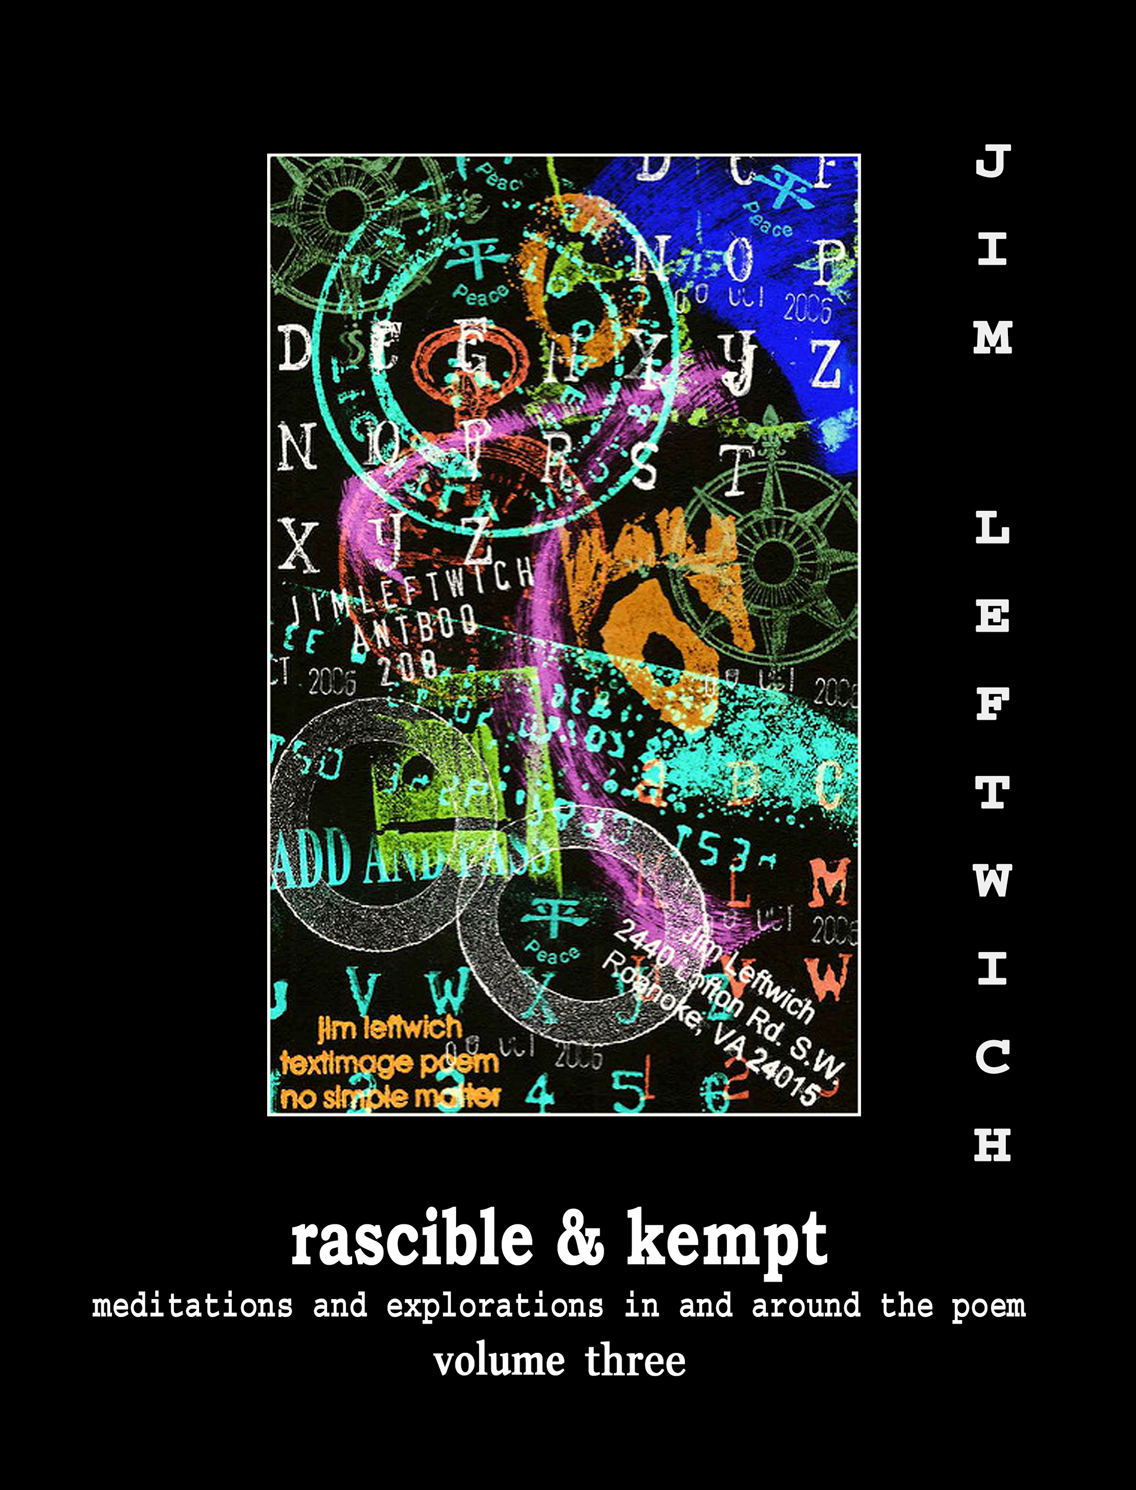 Rascible & Kempt: Meditations and Explorations in and Around the Poem, vol. 3